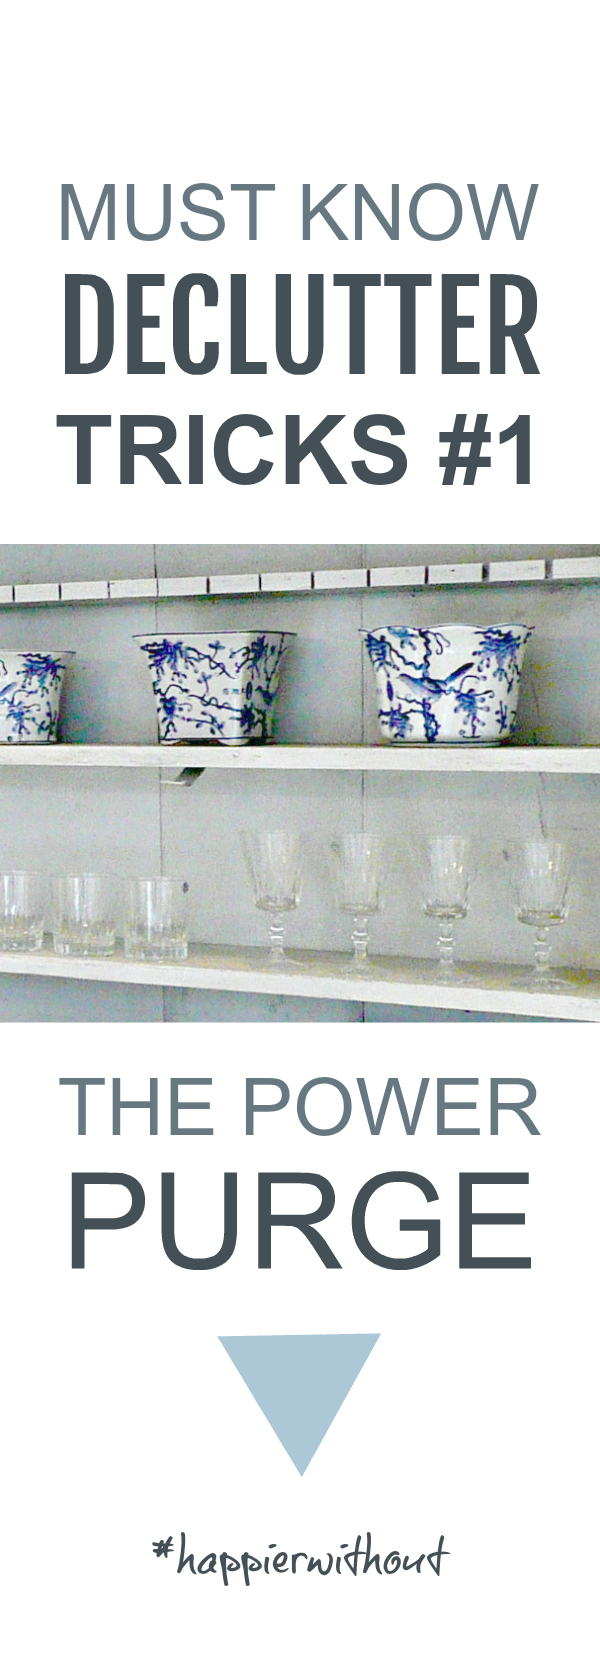 The power purge is a must know declutter trick that helps you clear clutter fast without getting overwhelmed #declutter #clutter #simplify #organize